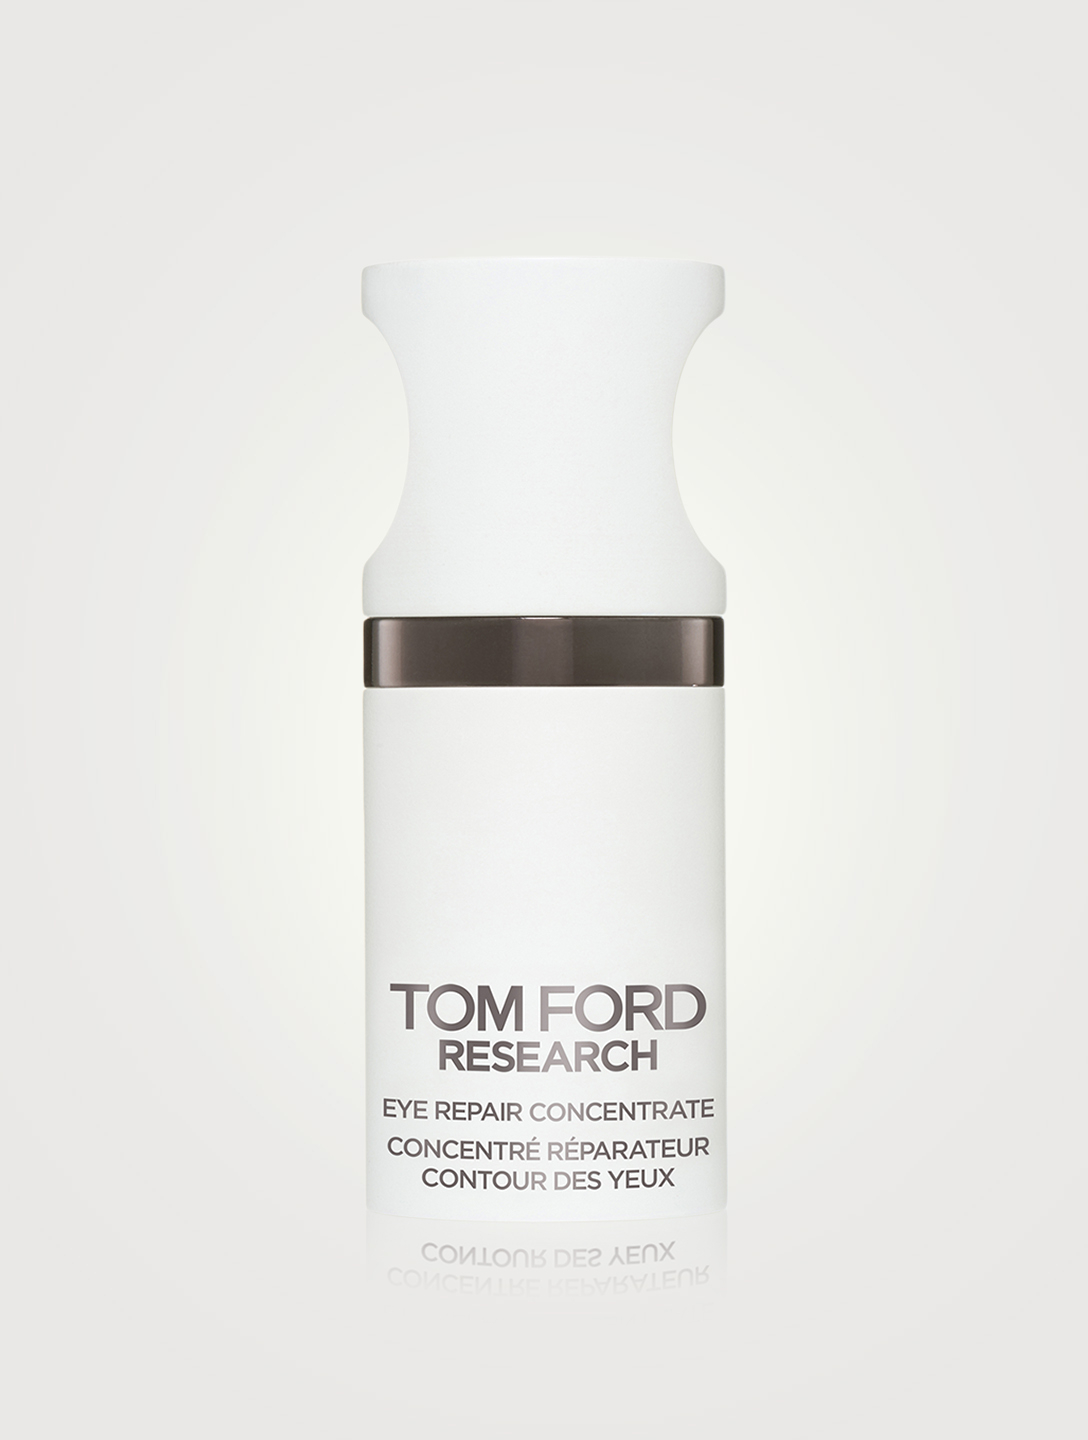 TOM FORD Concentré réparateur contour des yeux TOM FORD RESEARCH Beauté